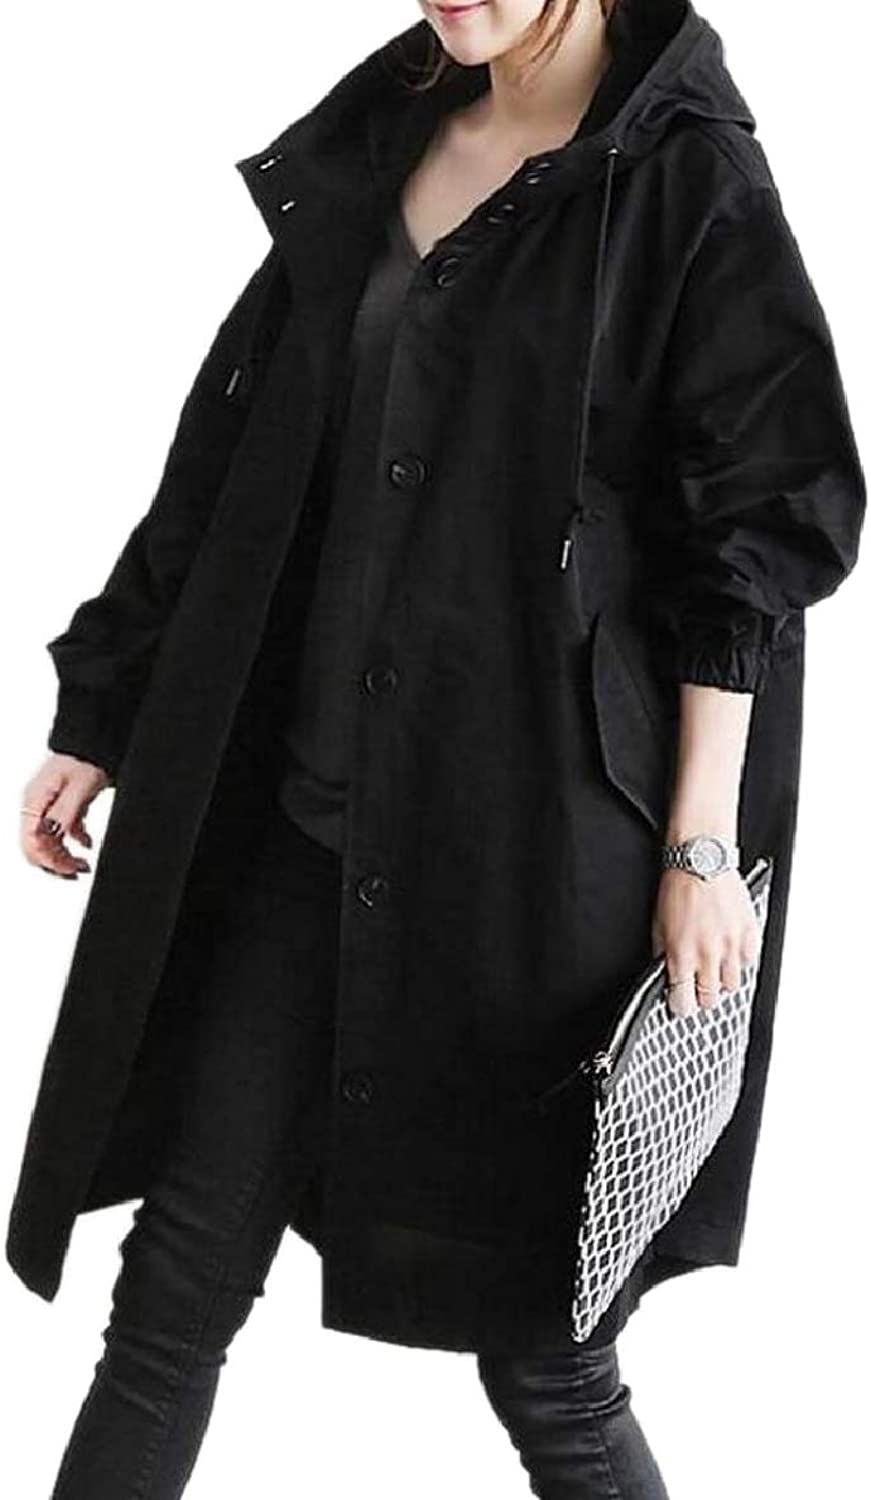 Xswsy XGCA Women's Button Front Oversize Strings Hoodie Casual Trench